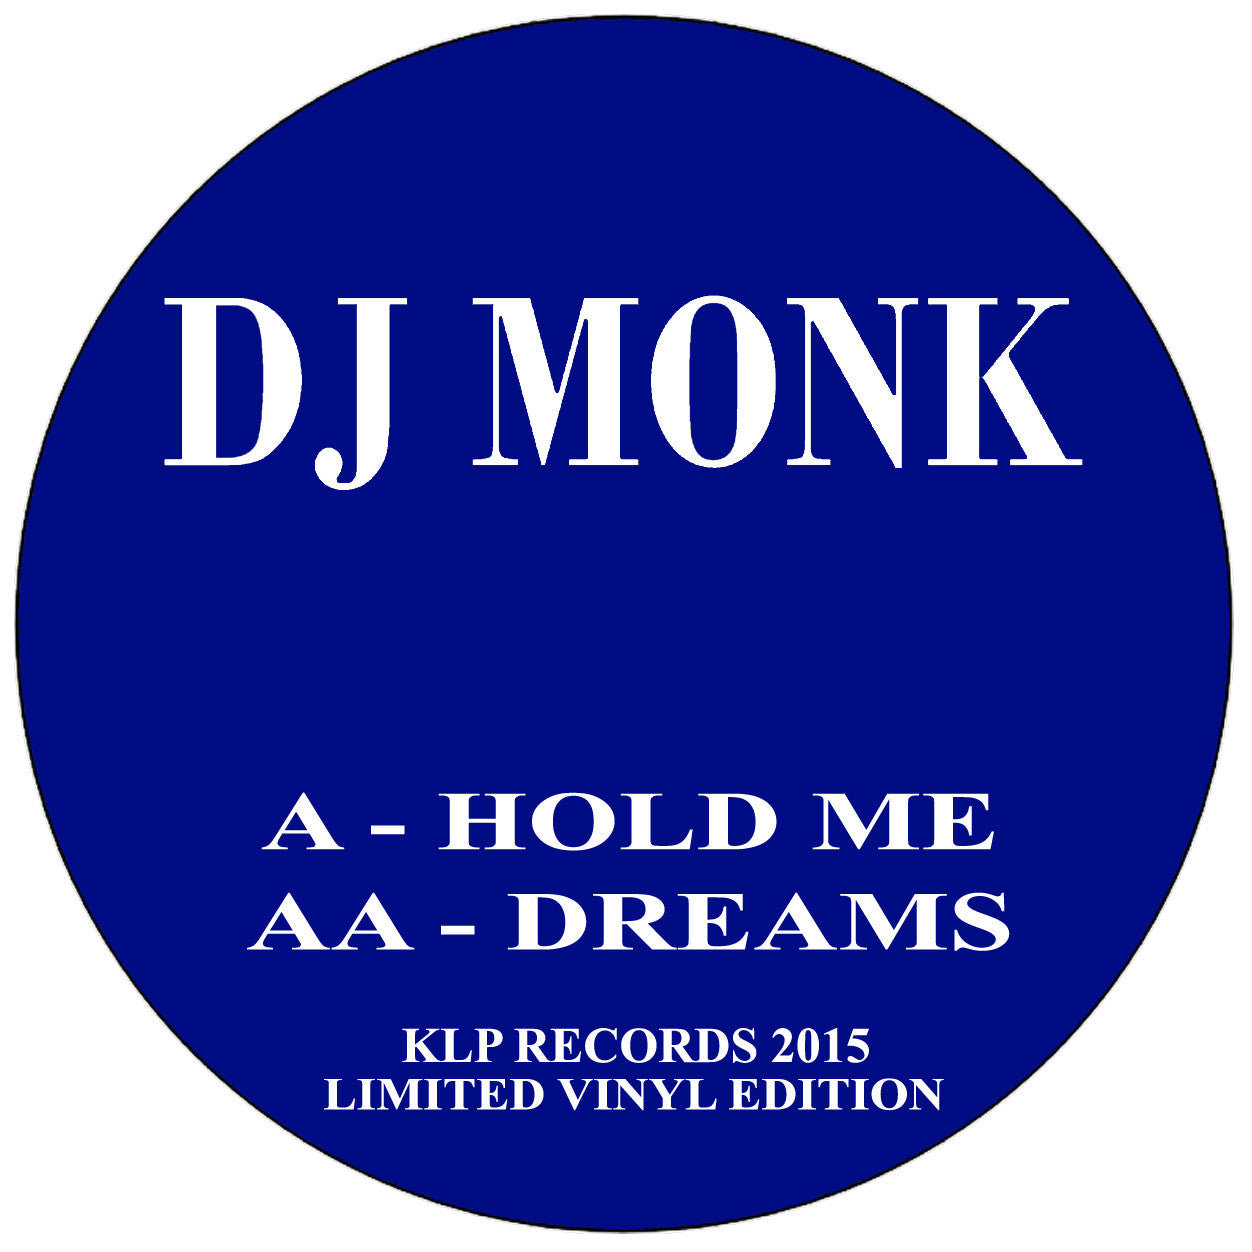 DJ Monk - Hold Me / Dreams - Unearthed Sounds